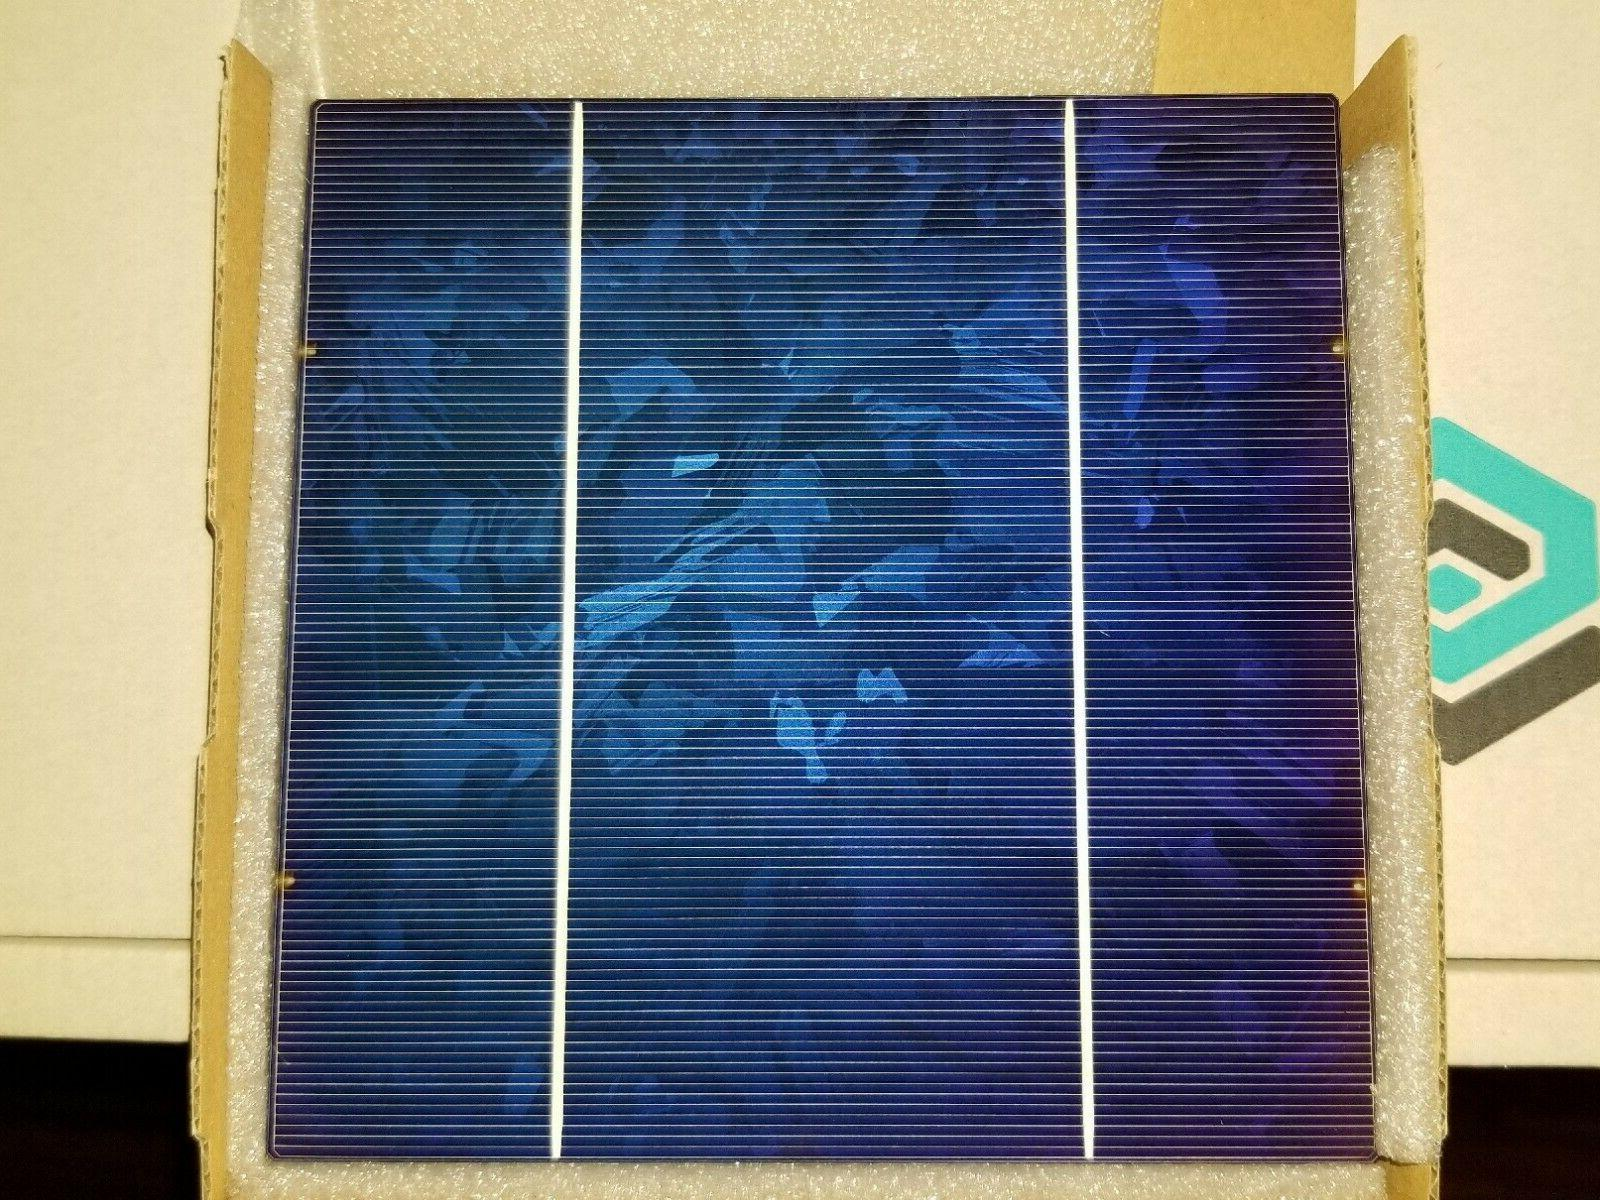 200 solar cells diy panels 6 x